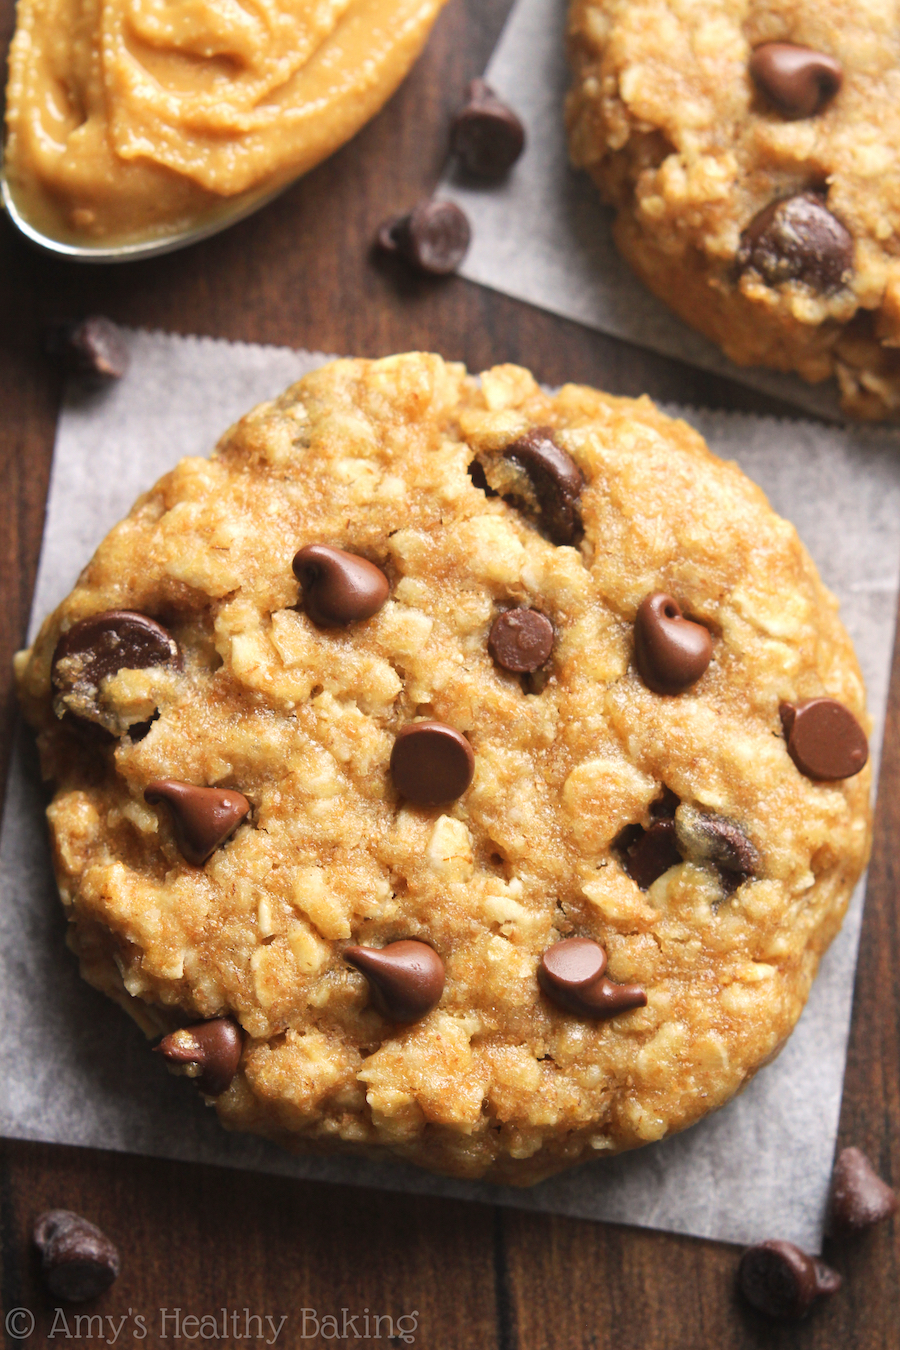 Chocolate Chip Almond Butter Oatmeal Cookies | Amy's Healthy Baking